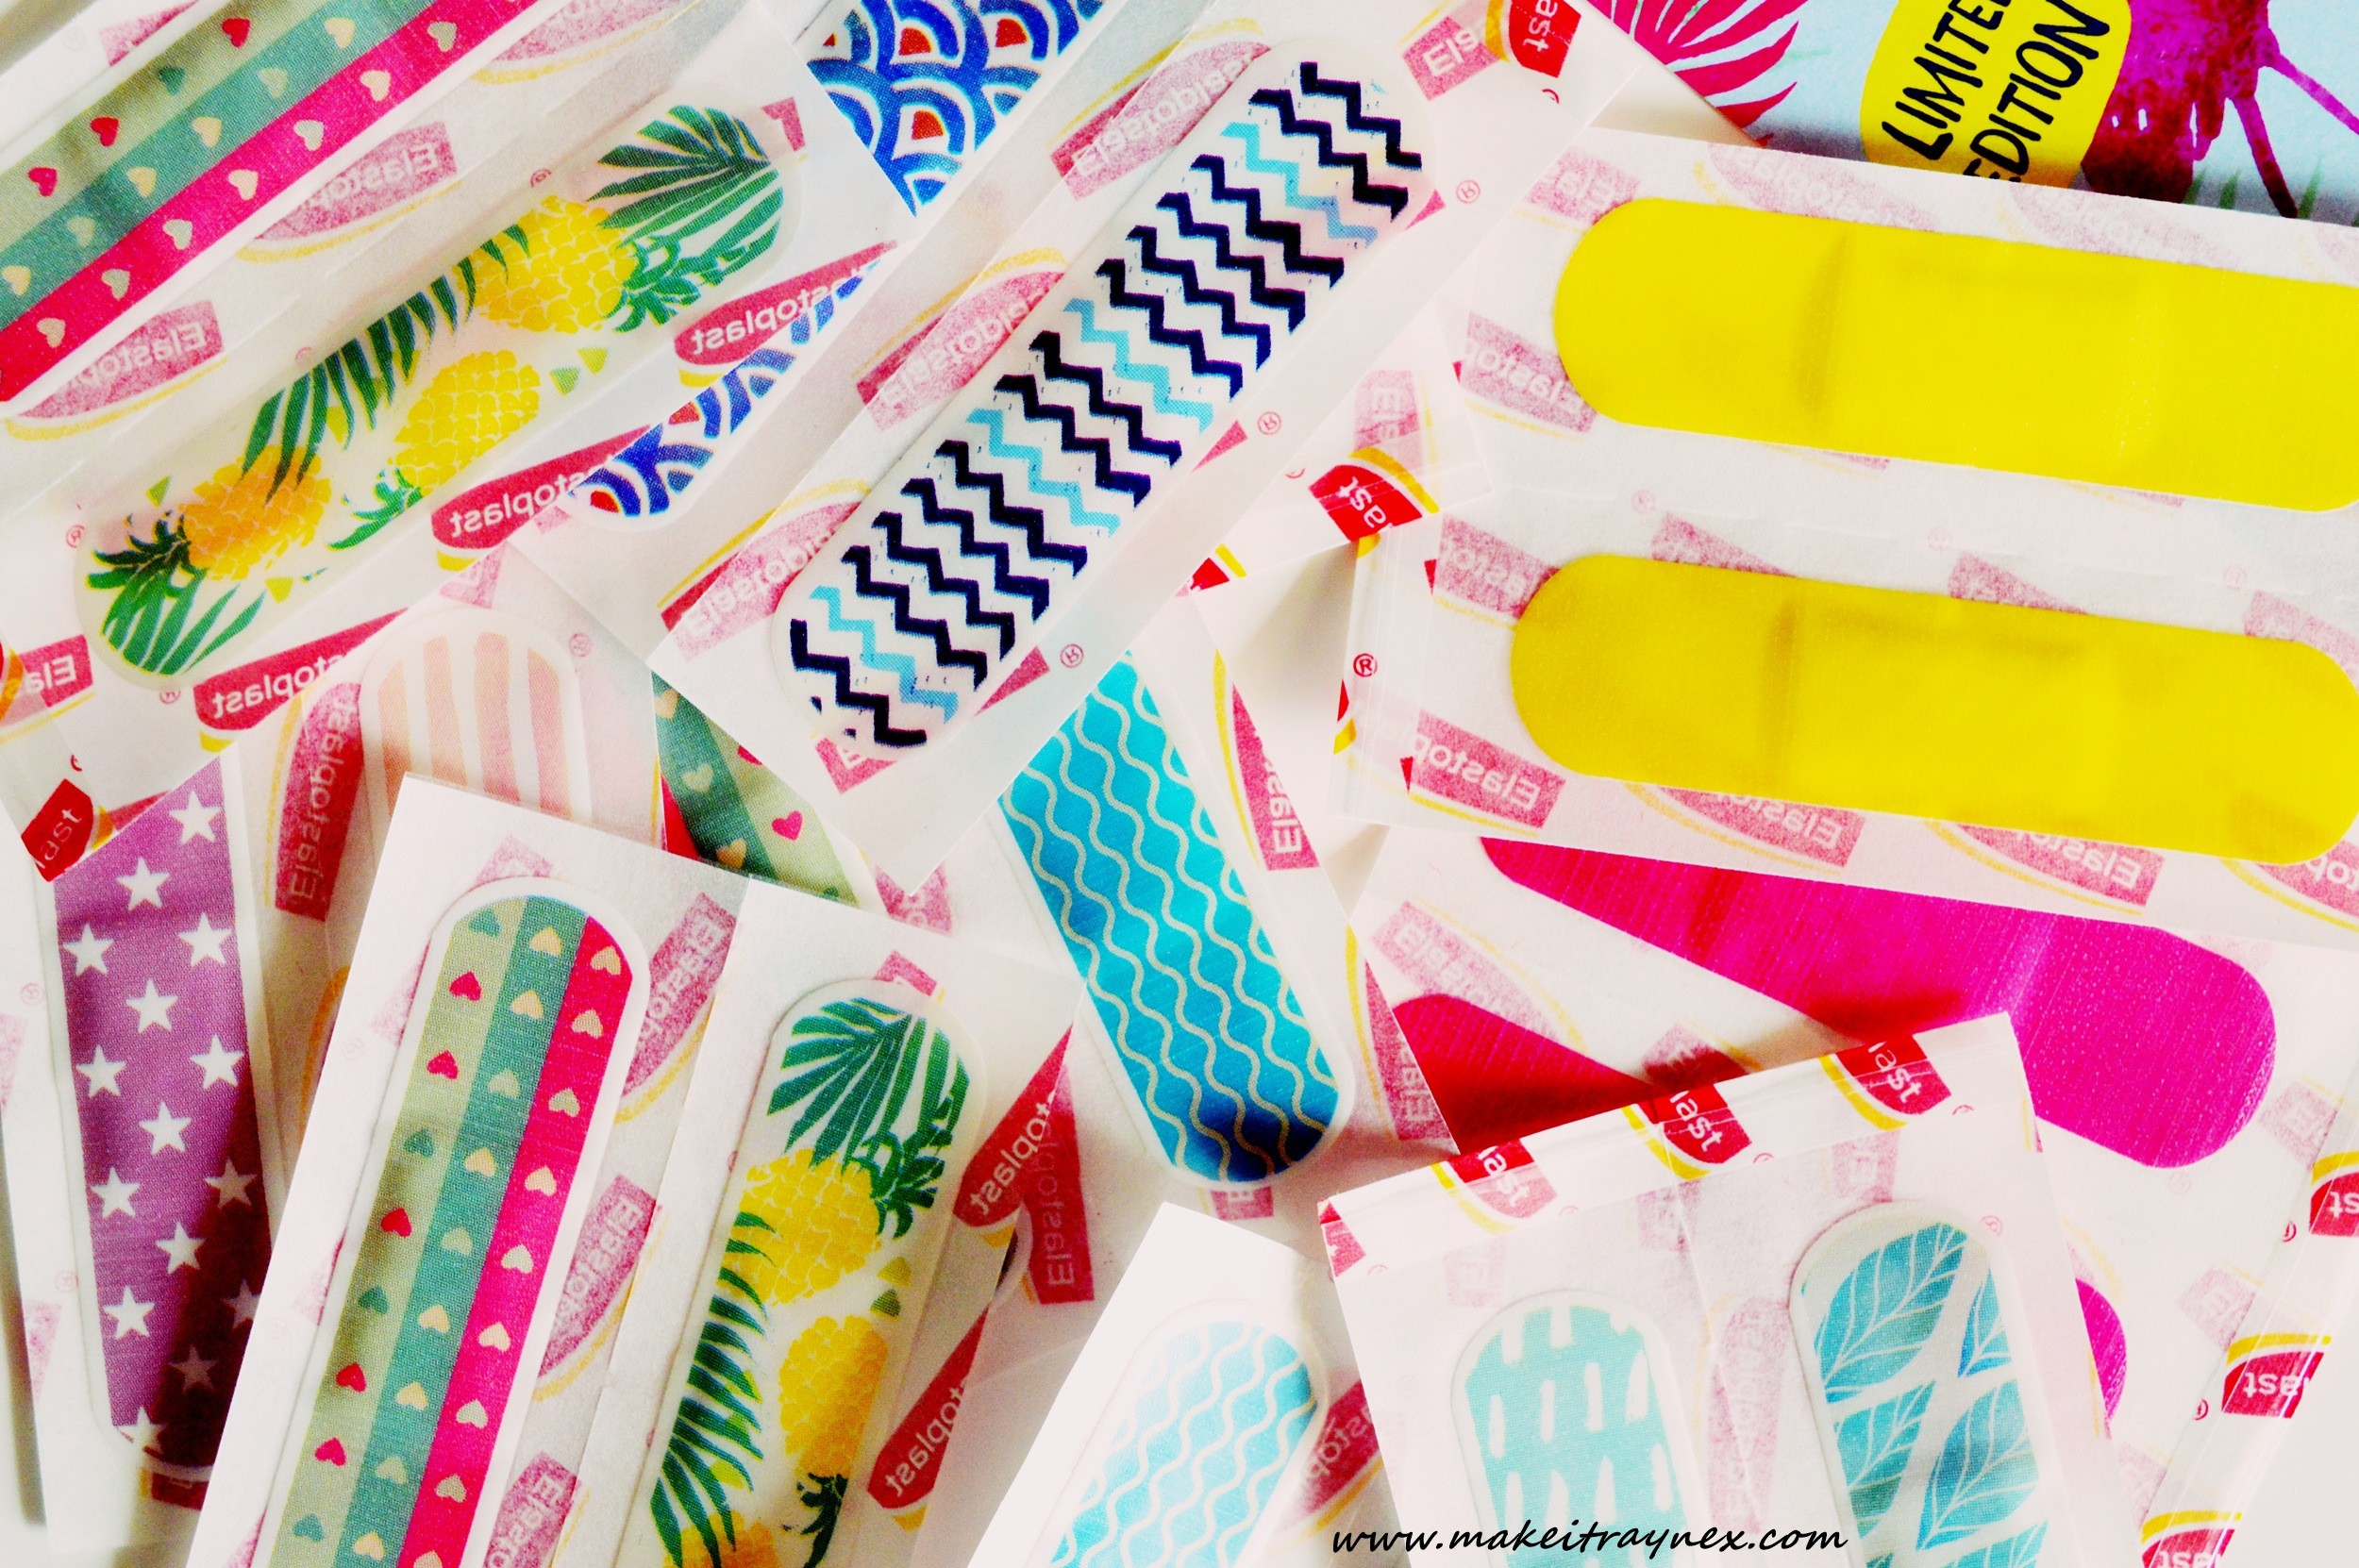 #Elastoplastfashionfix Limited Edition Packs {HERE'S & THERE'S}